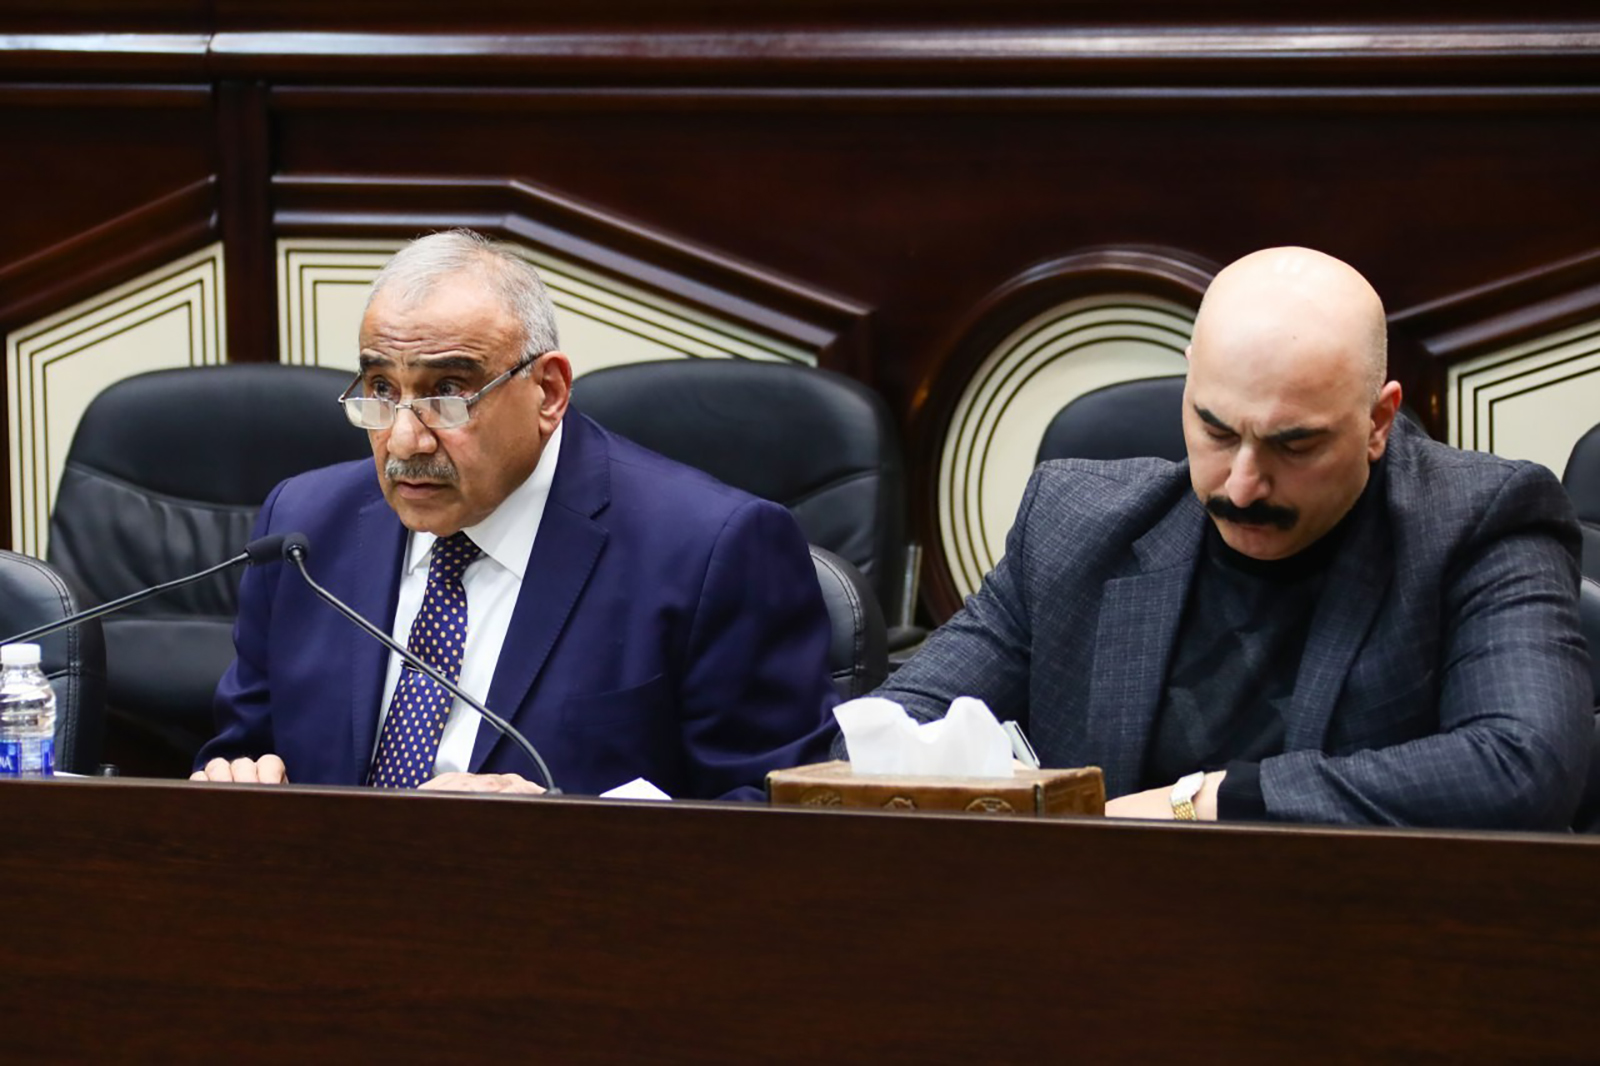 Iraqi Prime Minister Adil Abdul Mahdi (left) attends a parliament session in Baghdad, Iraq, on January 5.